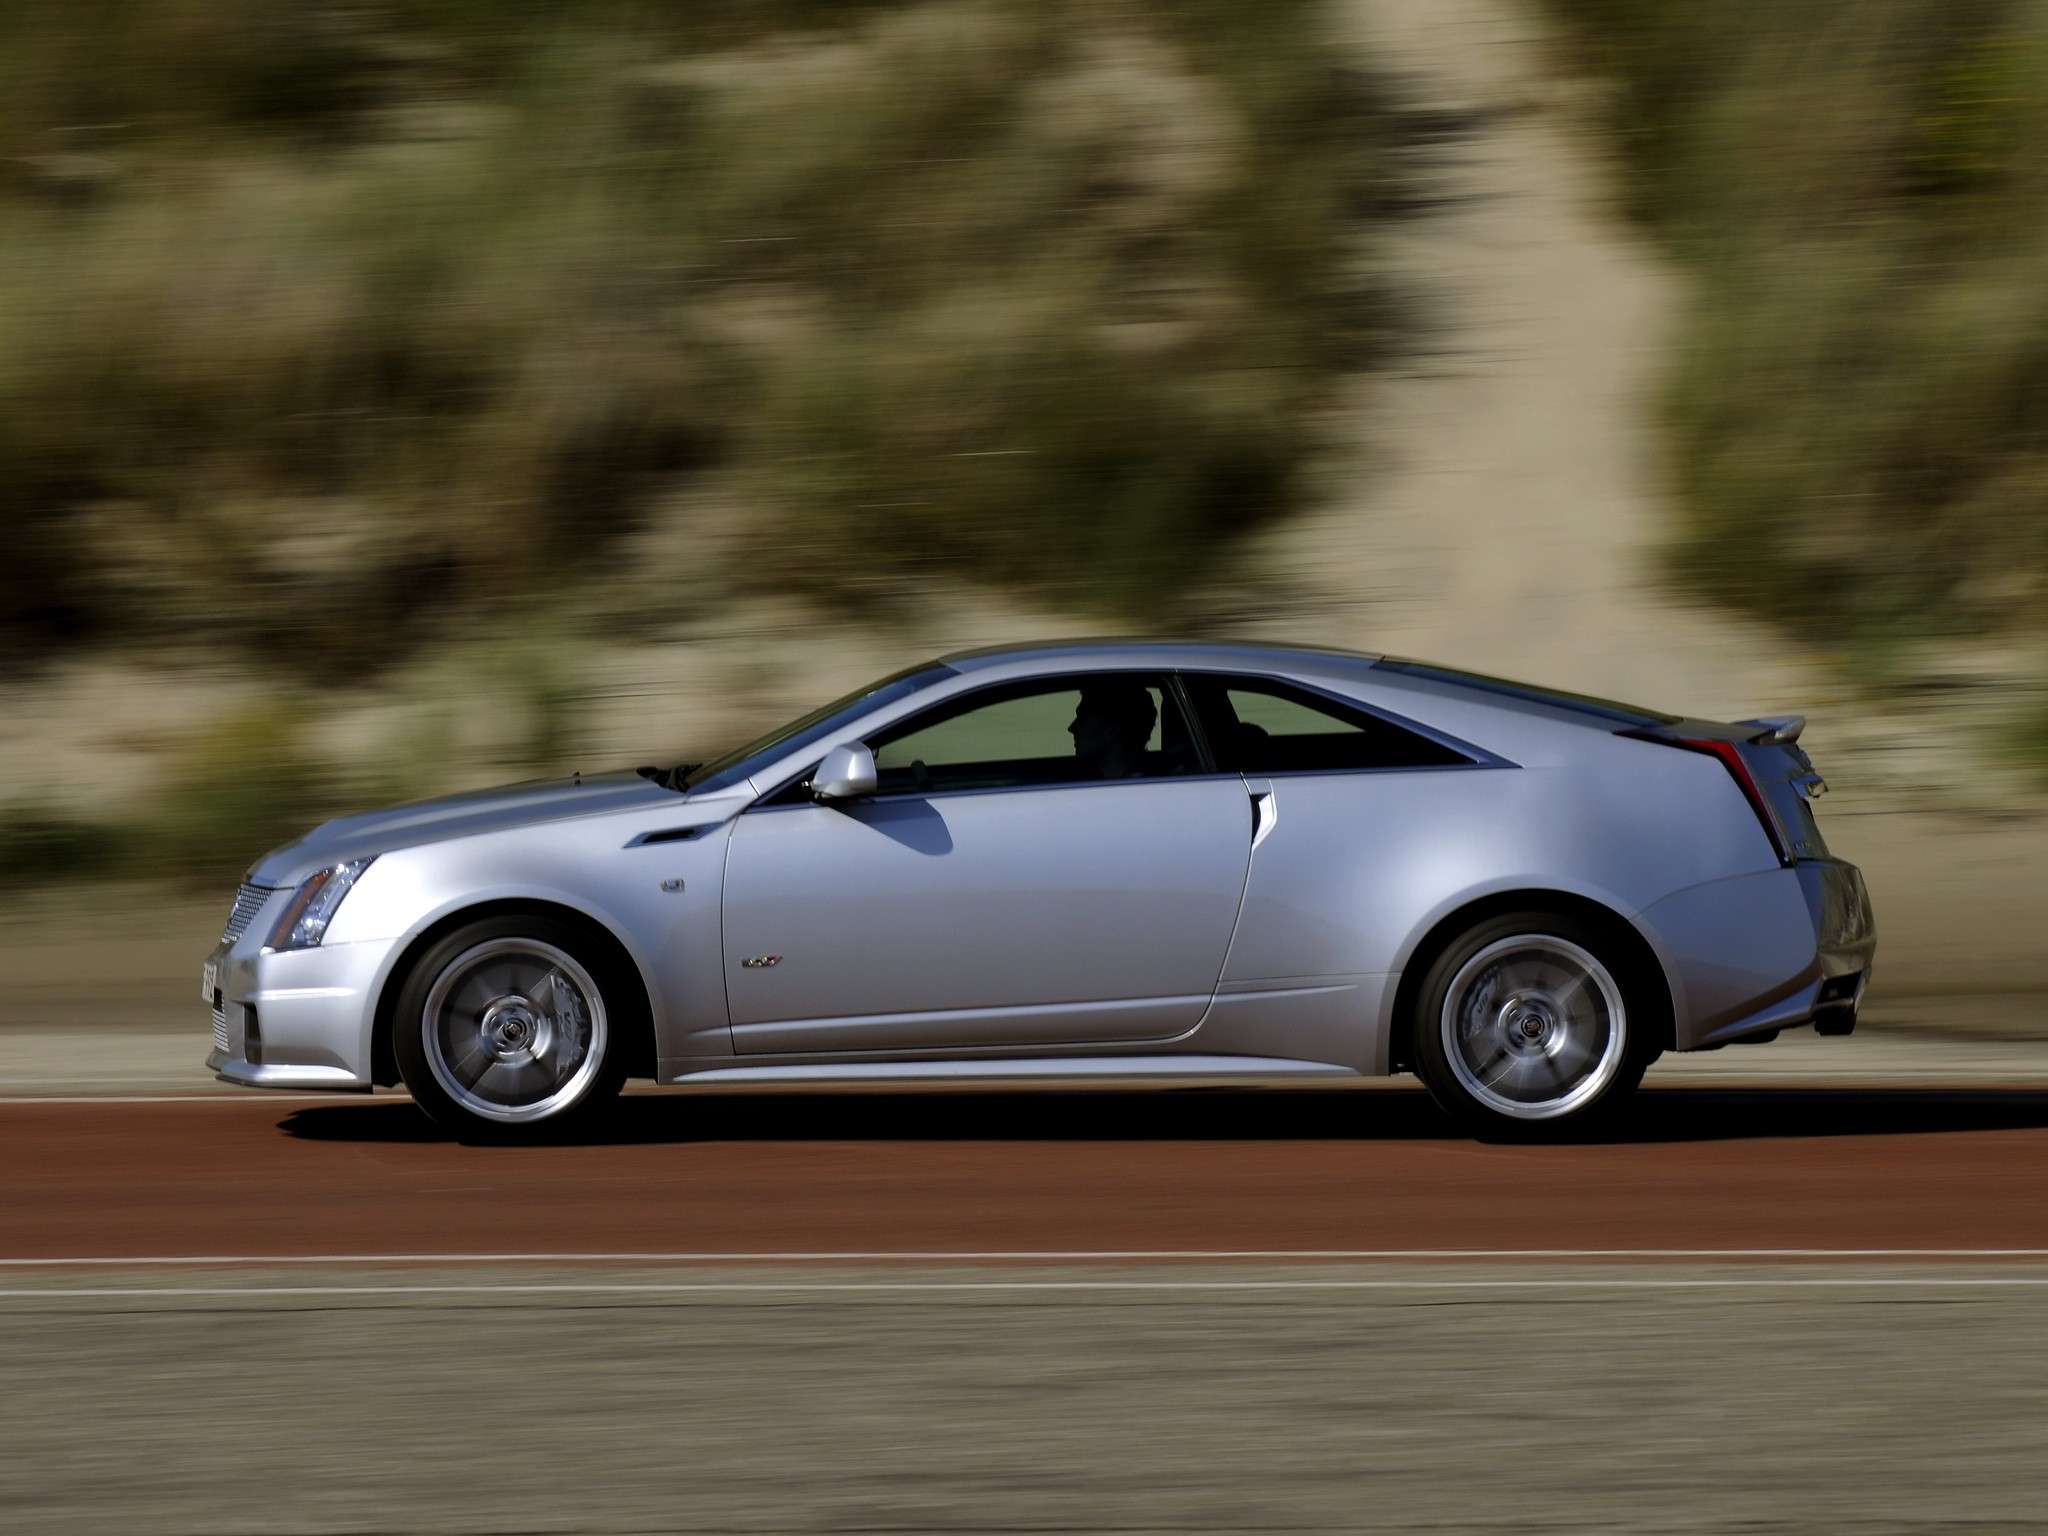 cadillac cts v coupe specs 2012 2013 2014 2015 2016. Black Bedroom Furniture Sets. Home Design Ideas